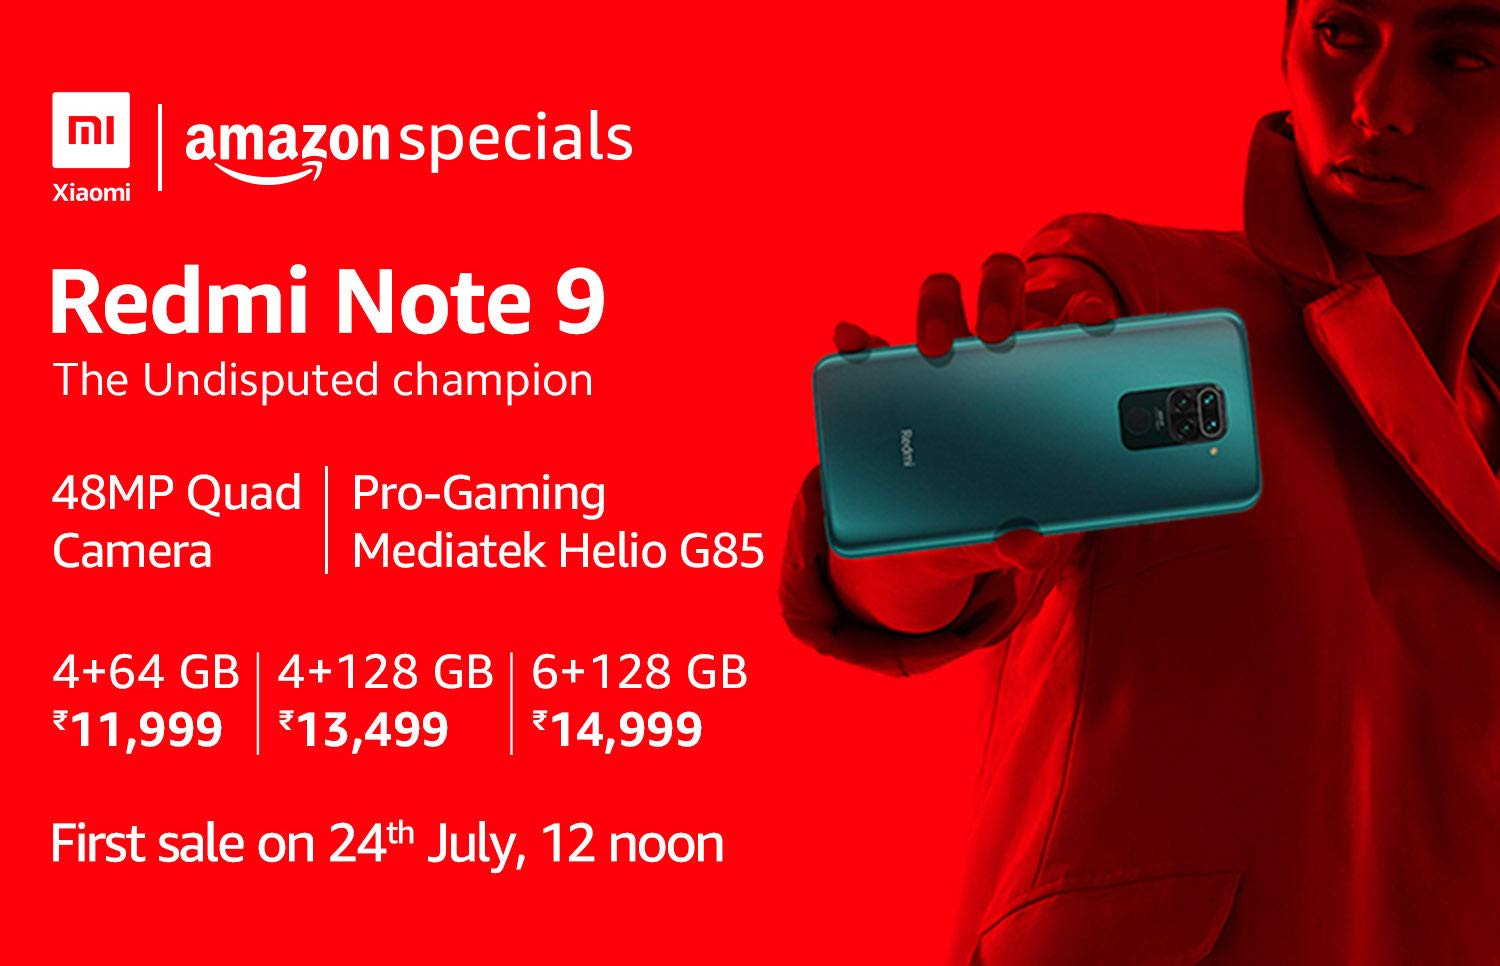 Redmi Note 9 First Sale on July 24th on Amazon India.